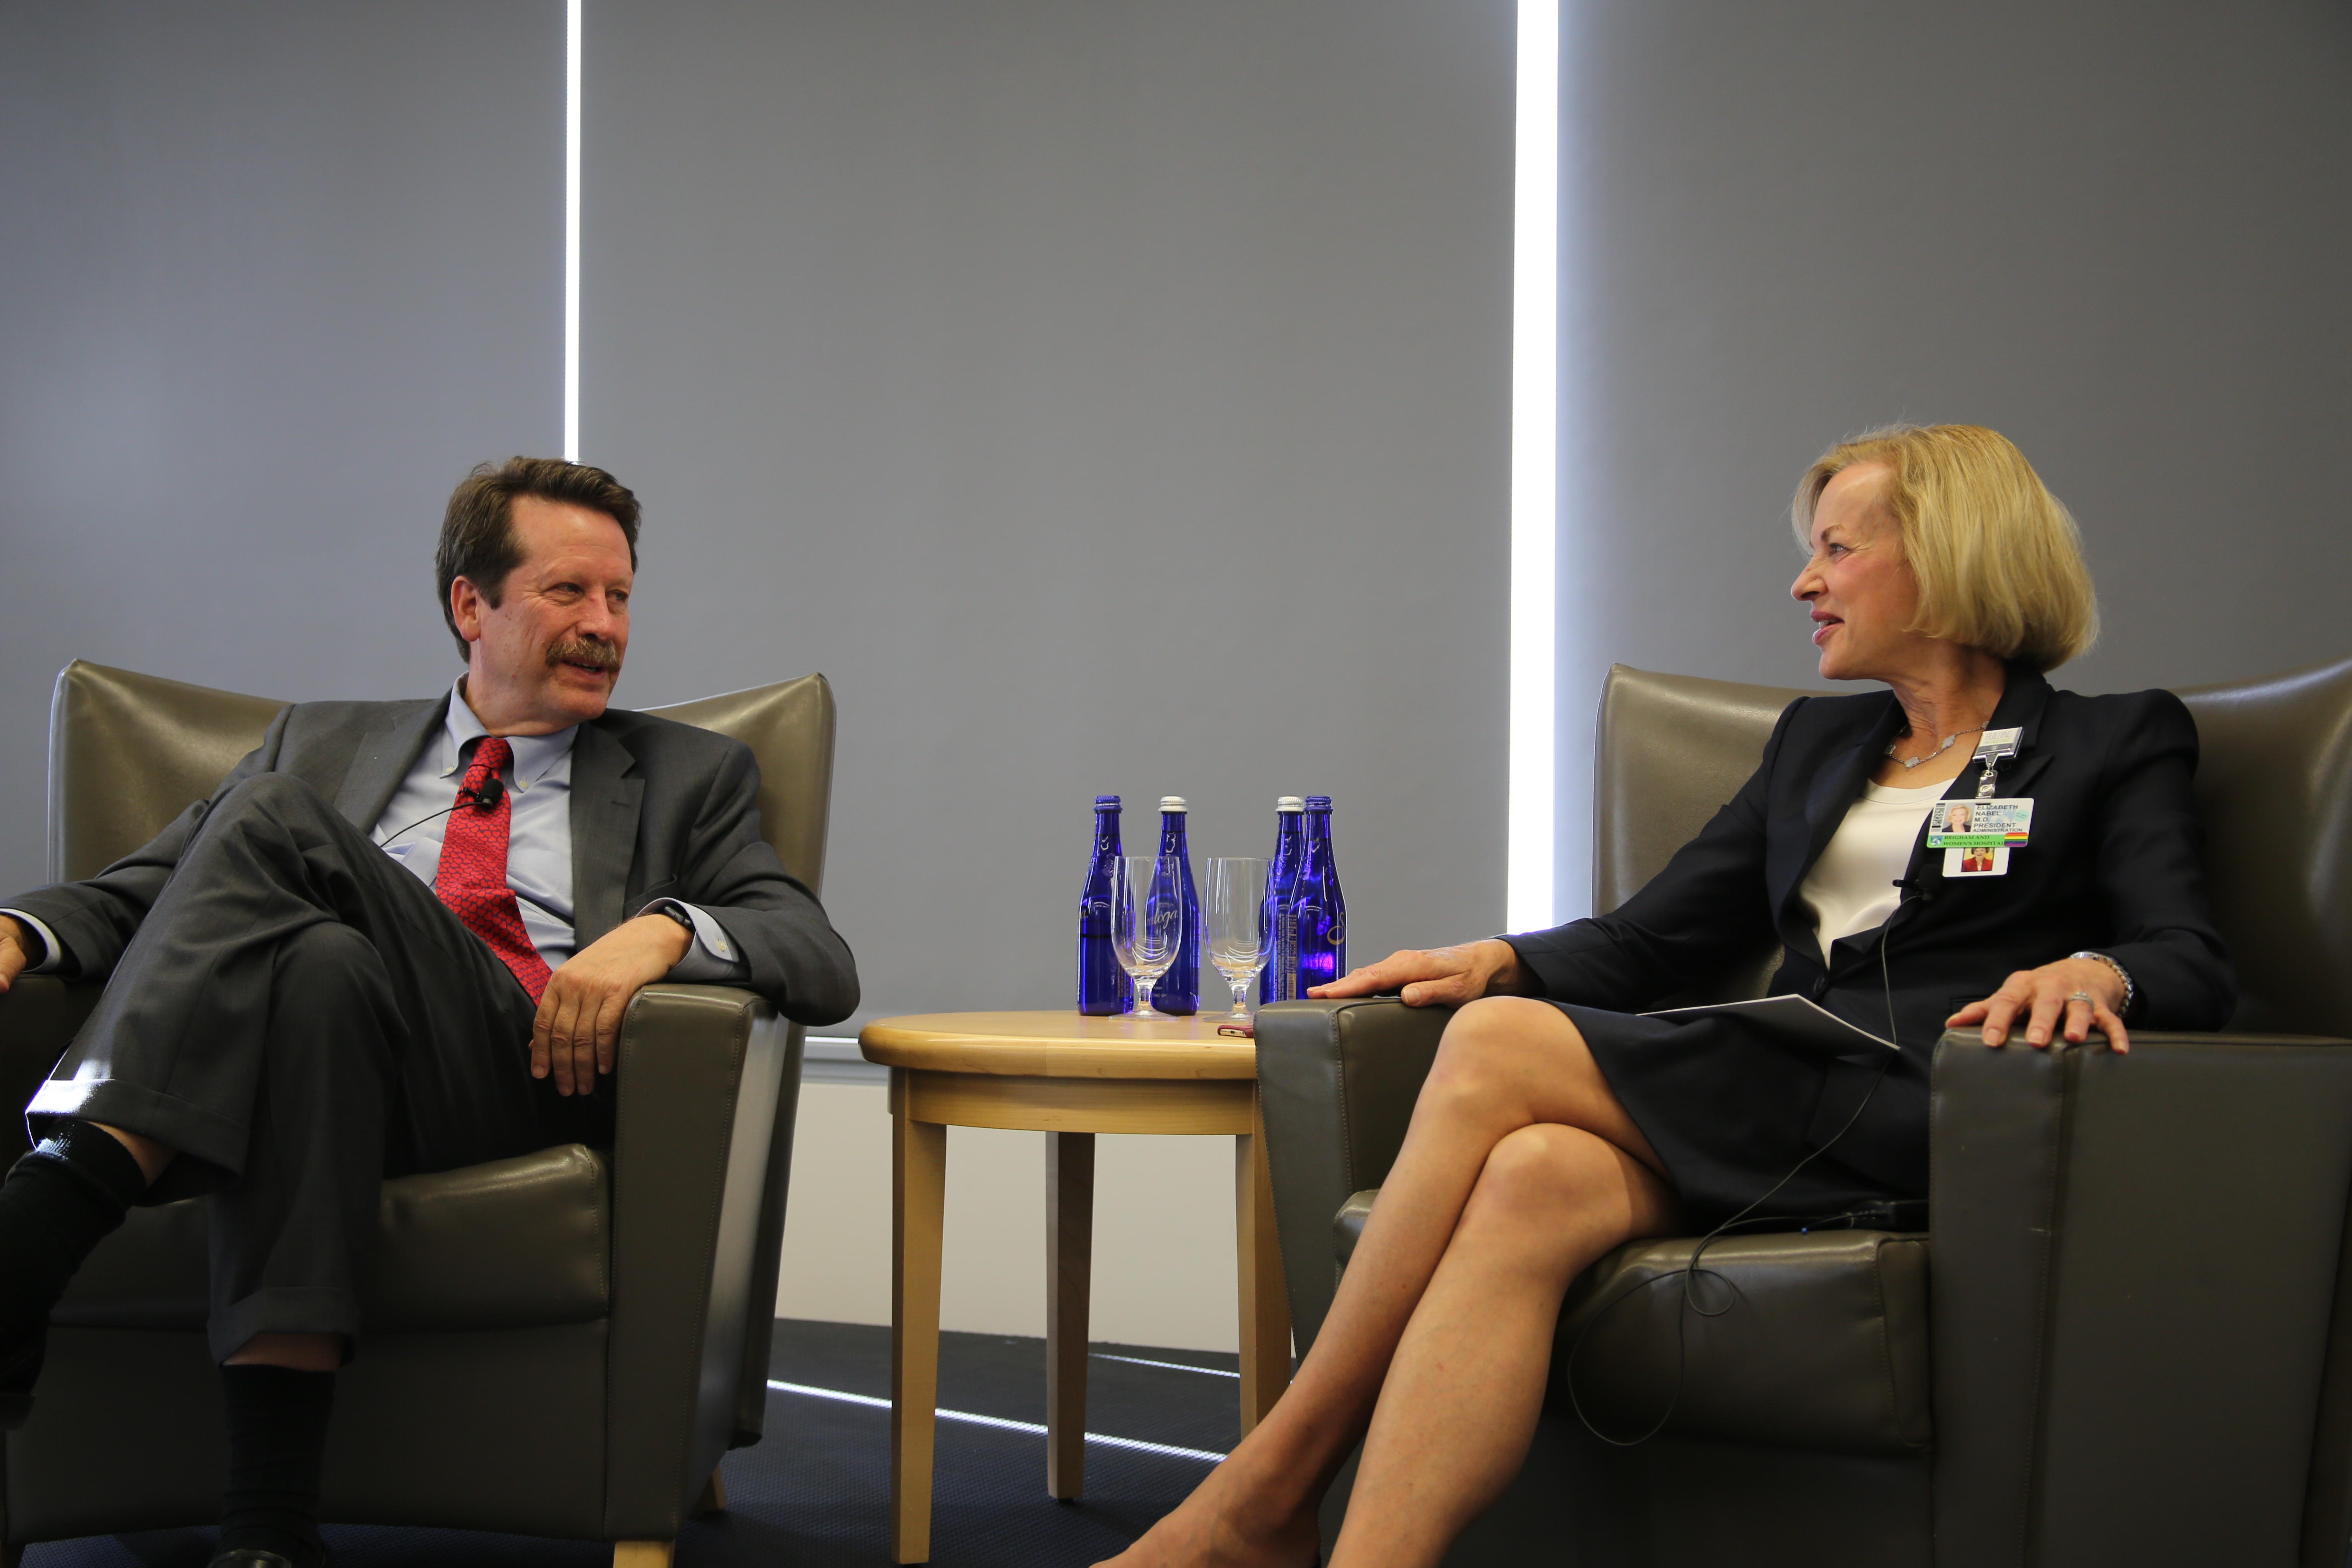 Robert Califf and Betsy Nabel discuss the FDA's need for feedback from experts at academic medical centers, such as the Brigham.